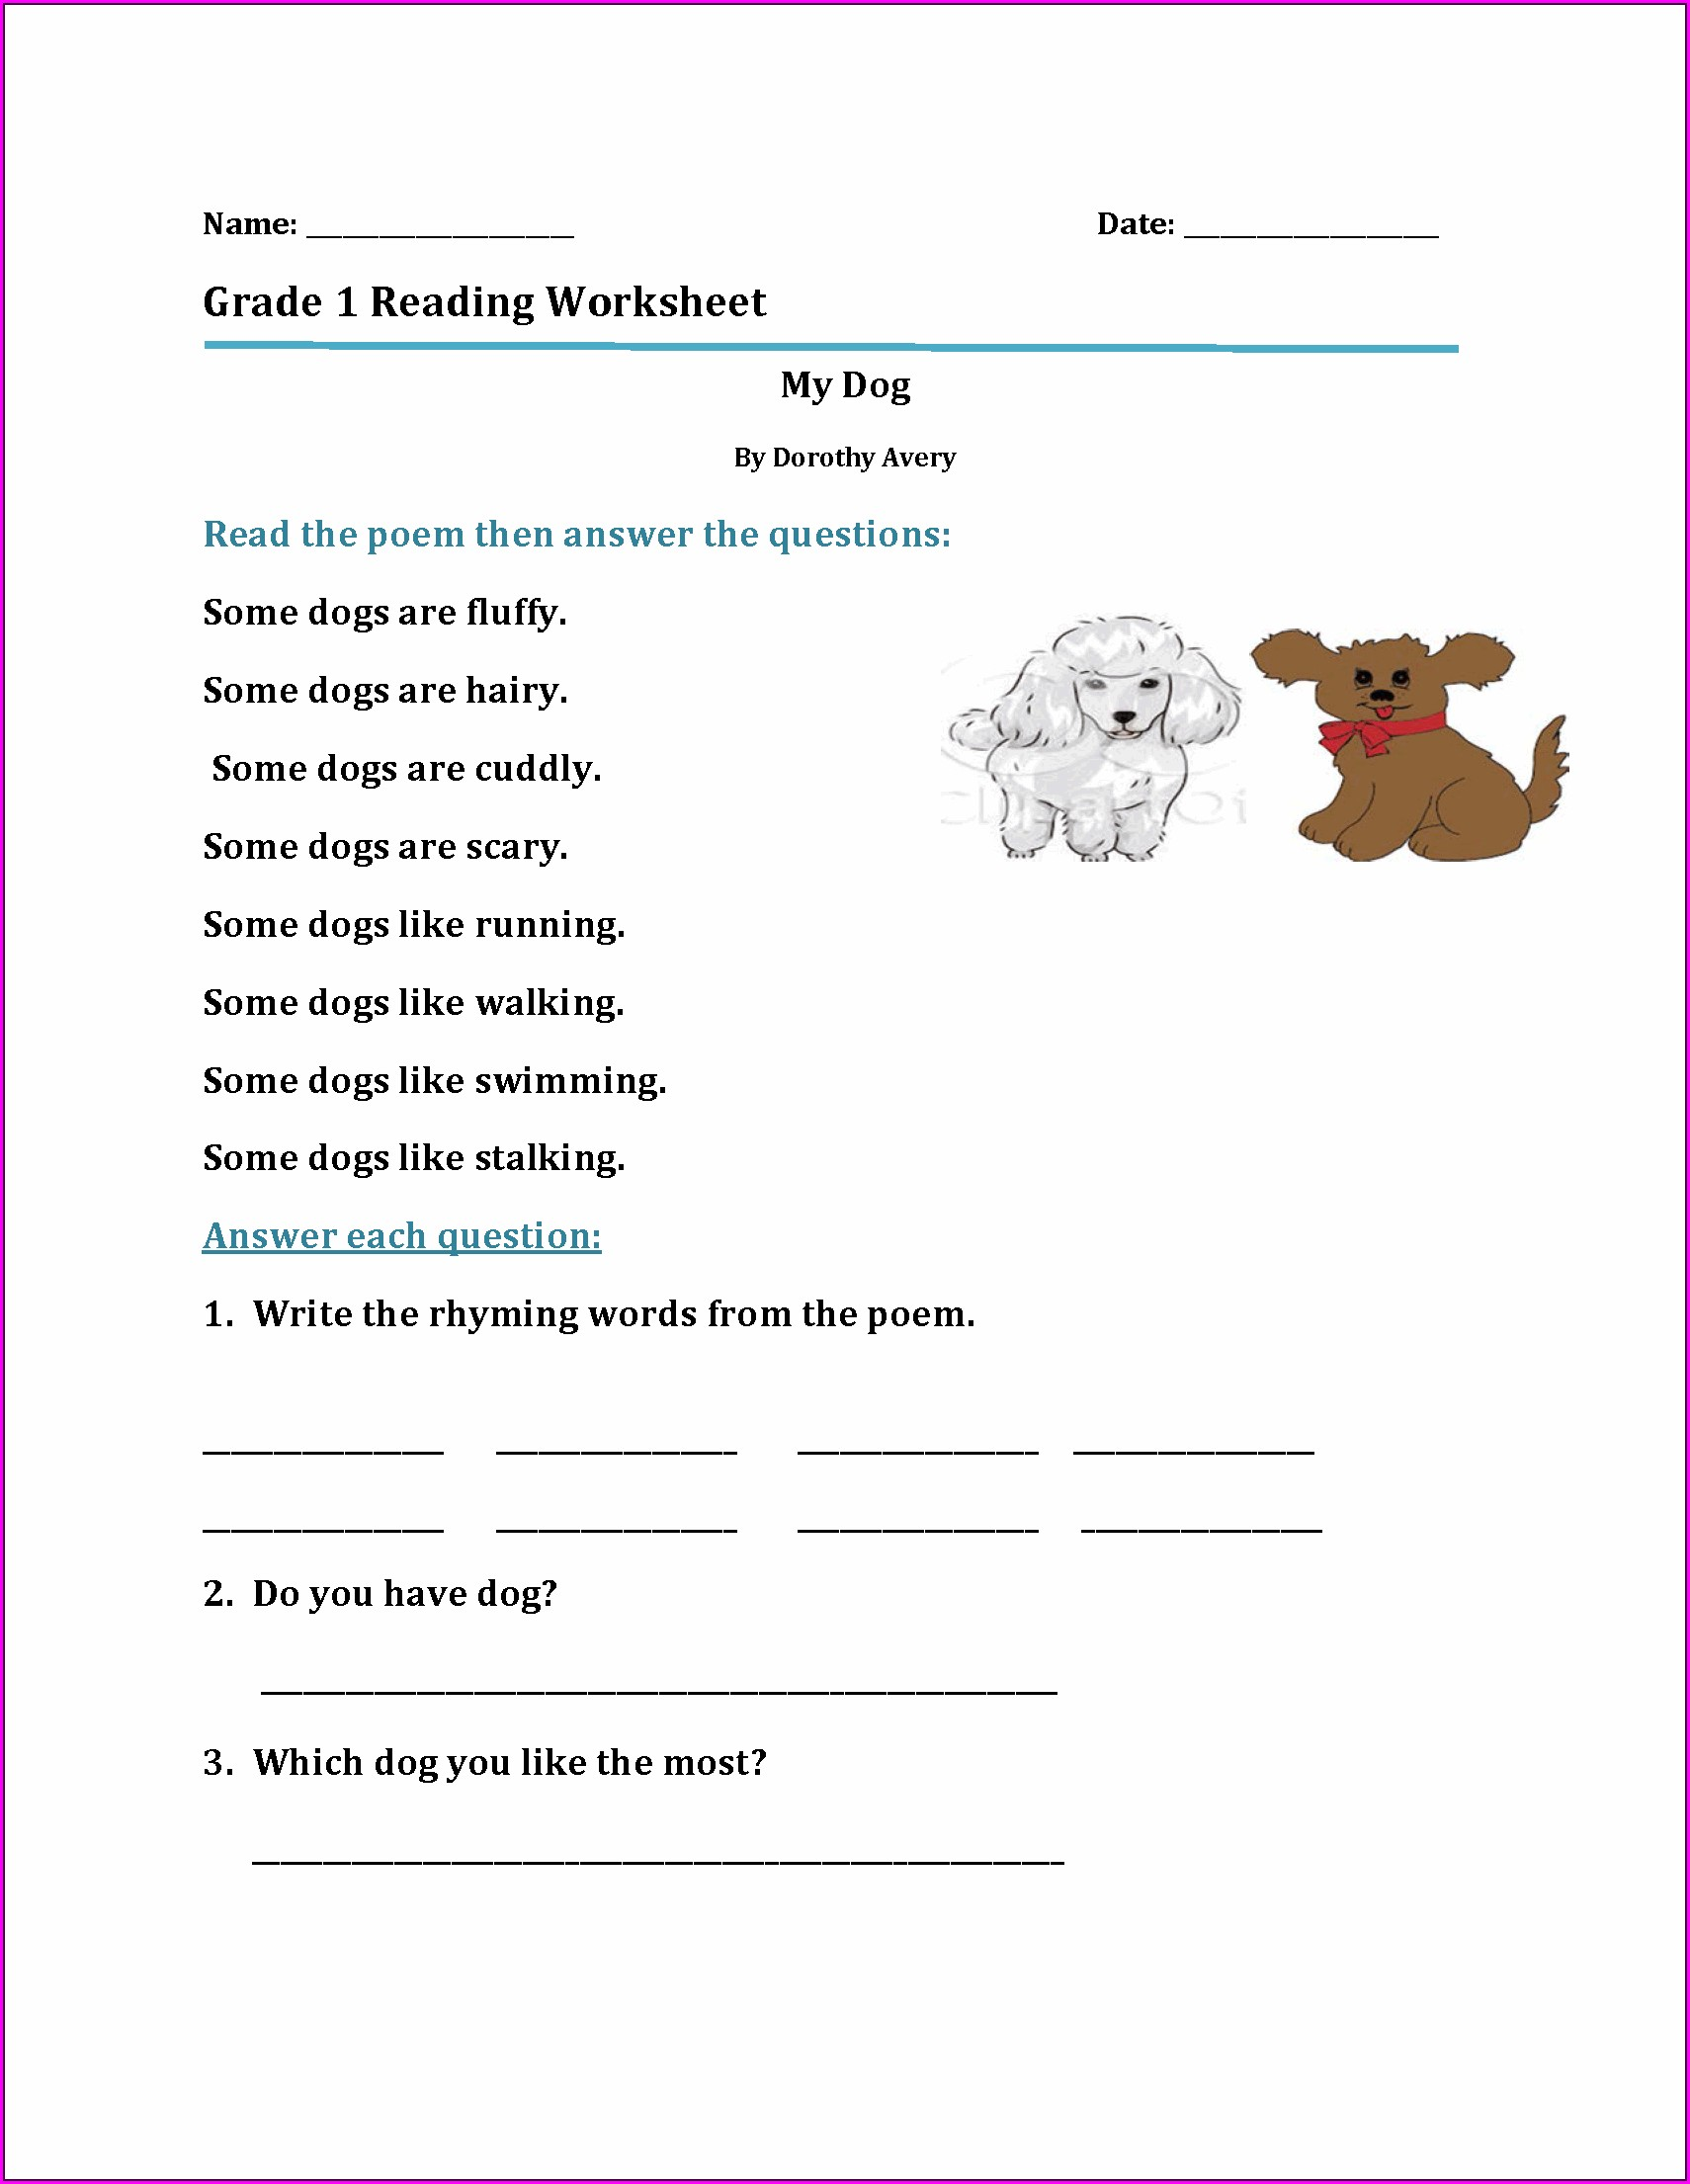 Grade 1 Reading Worksheets Printable